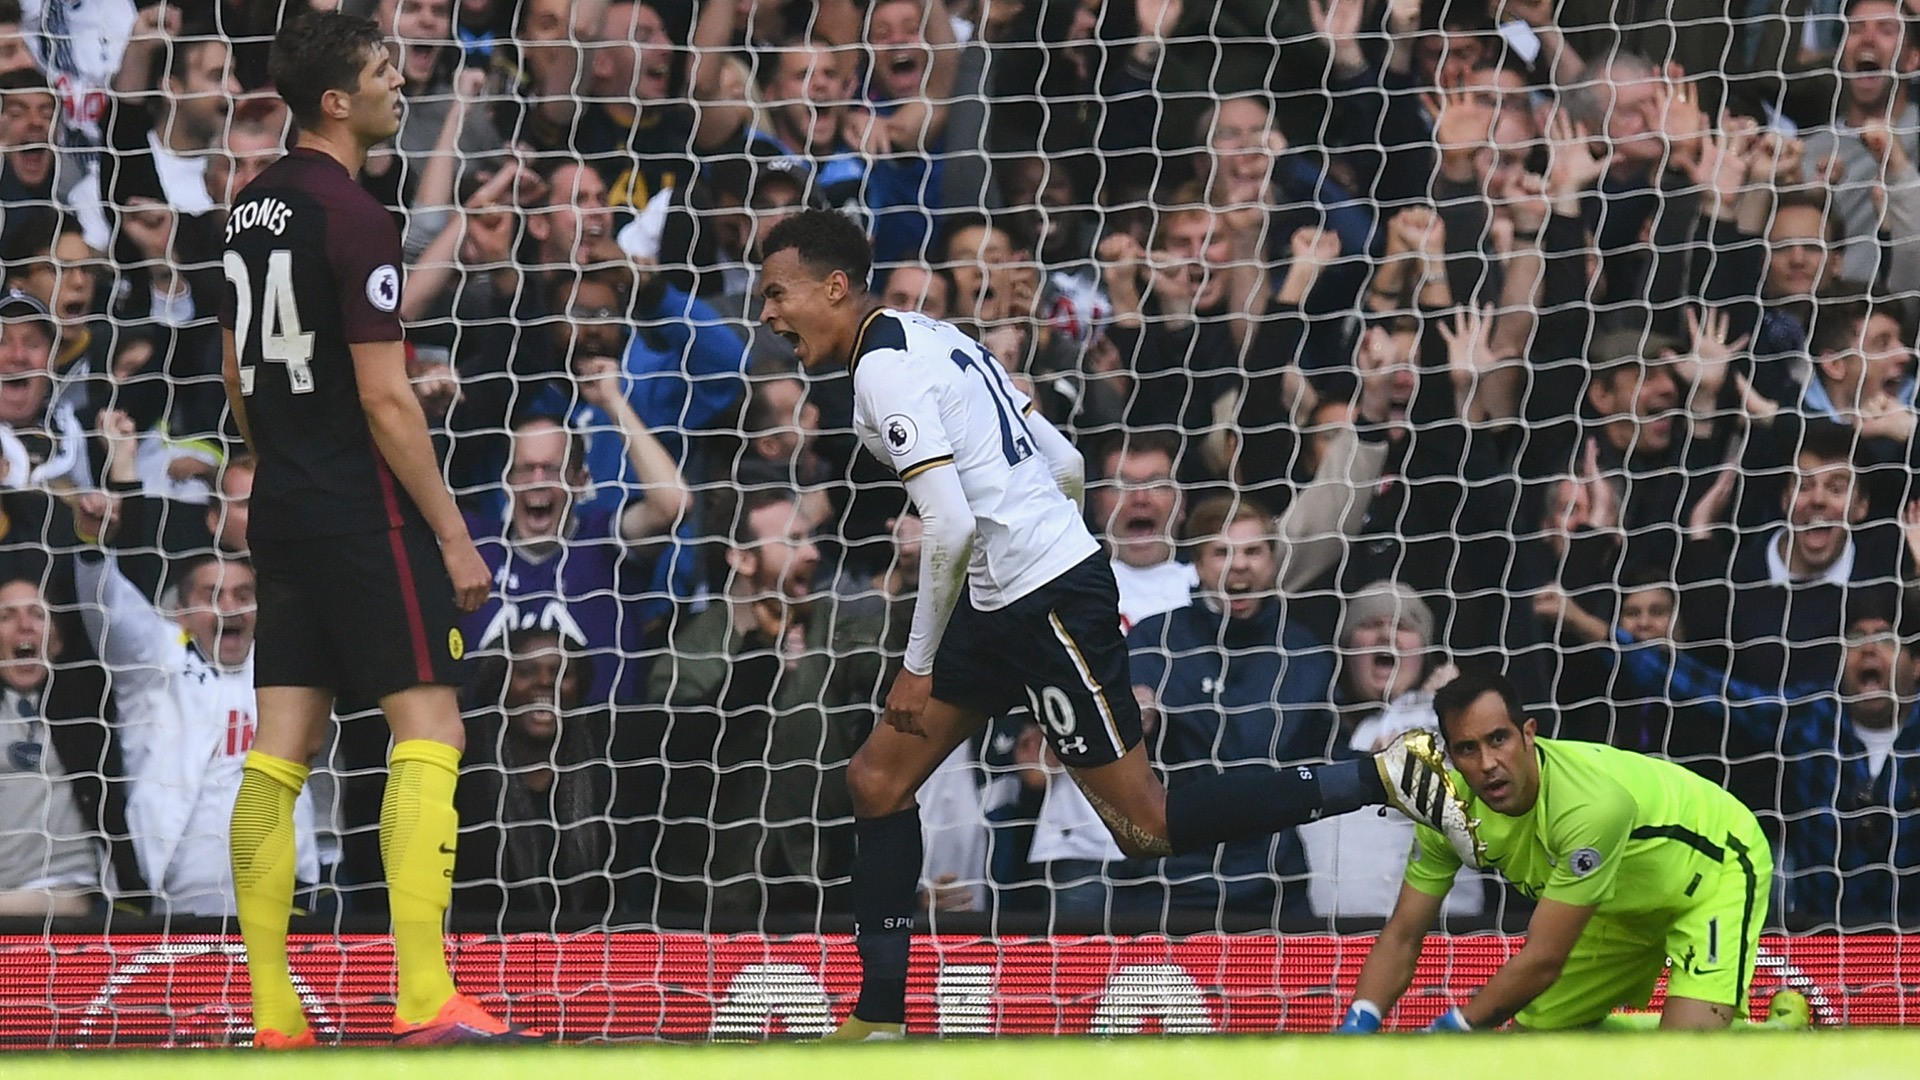 Hot Spurs - Guardiola was quick to concede that Tottenham thoroughly deserved their 2-0 win over City.